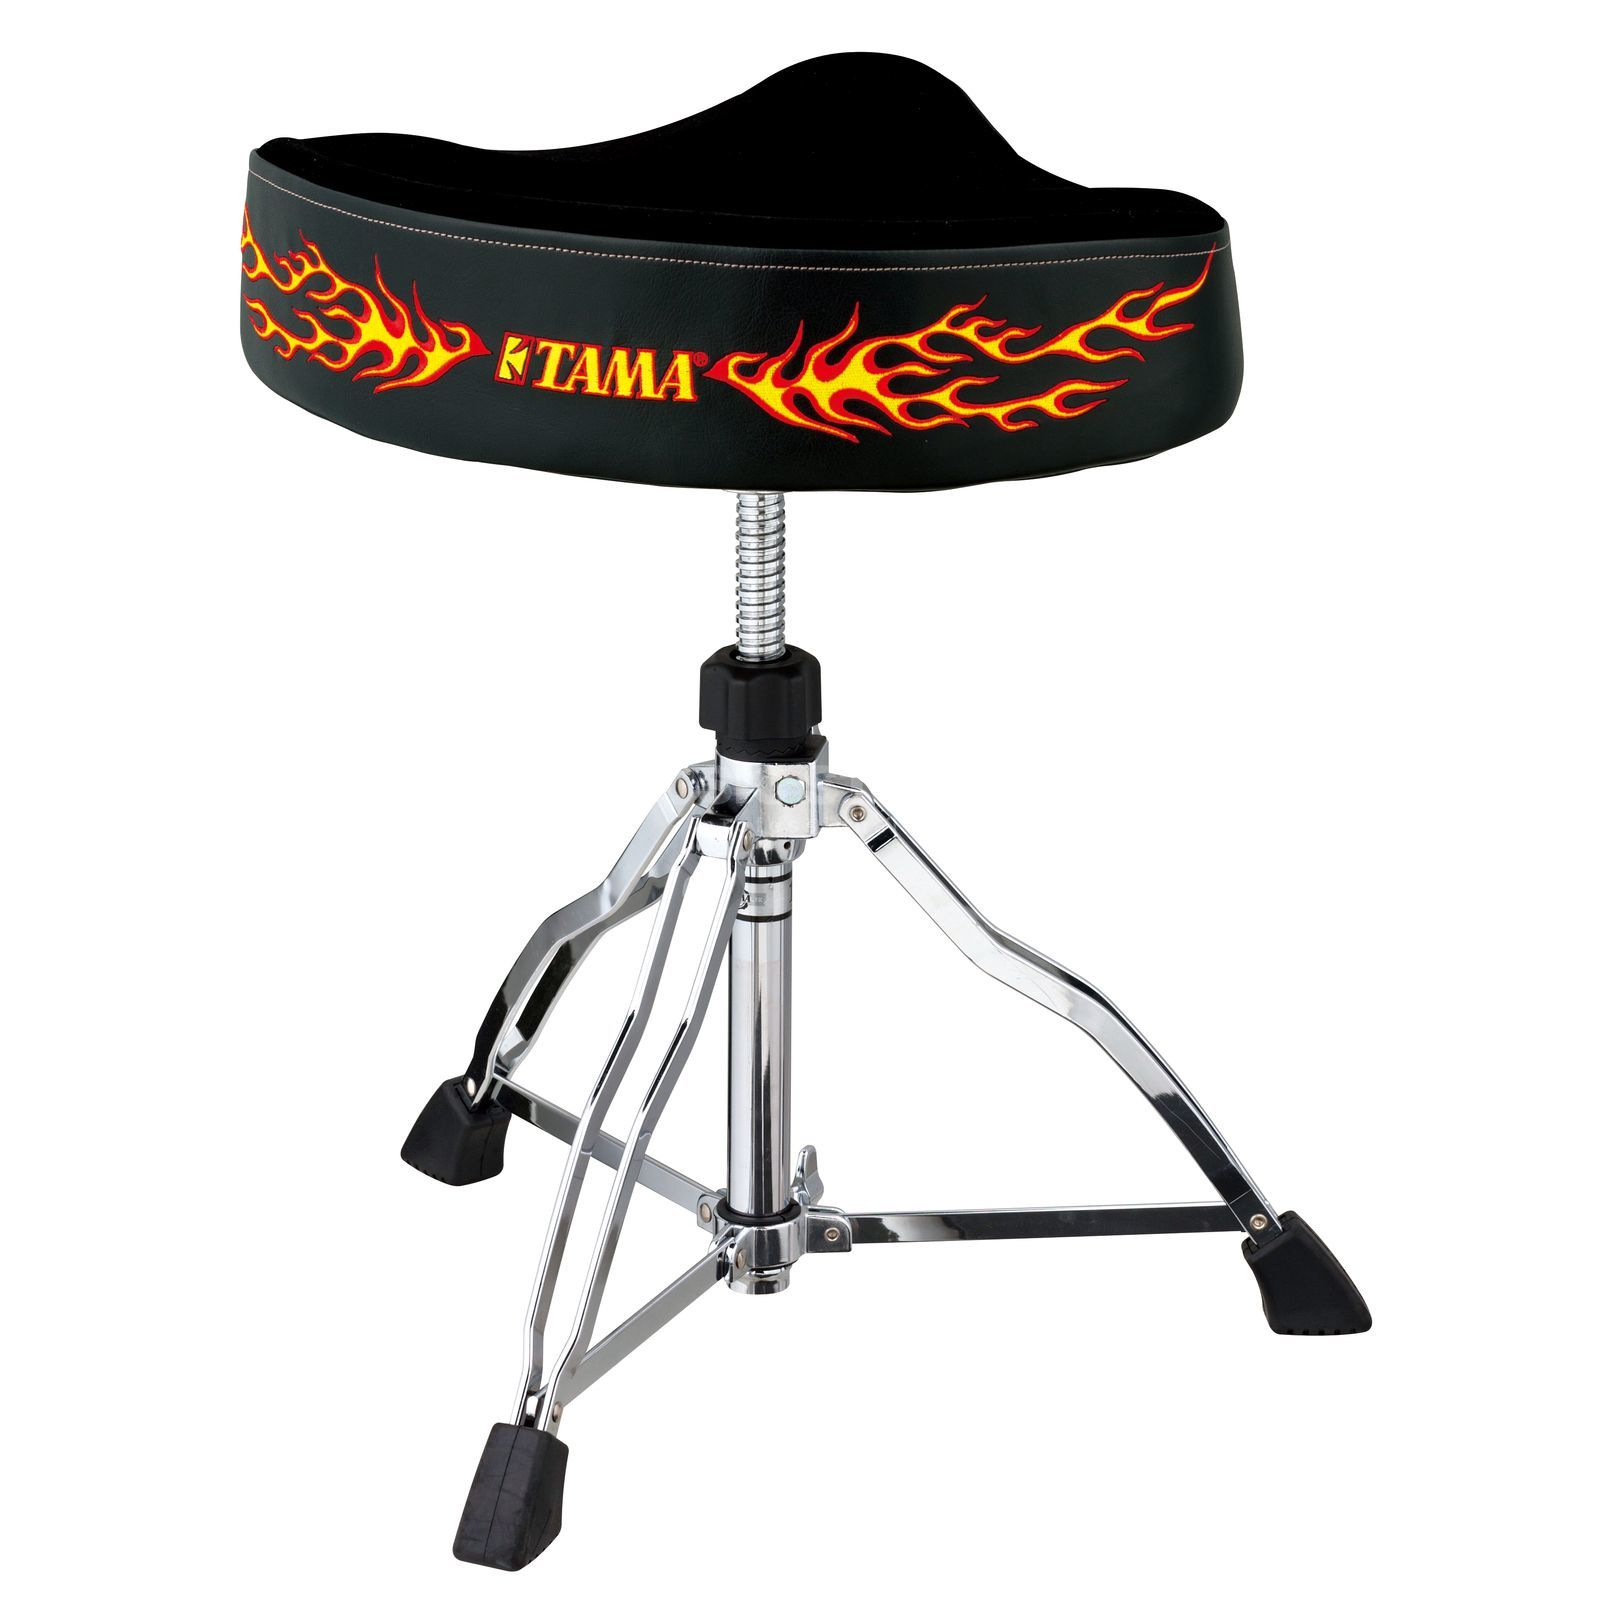 Tama Hocker FirstChair HT530CFE, Hot Seat Reissue, Flammen Produktbild